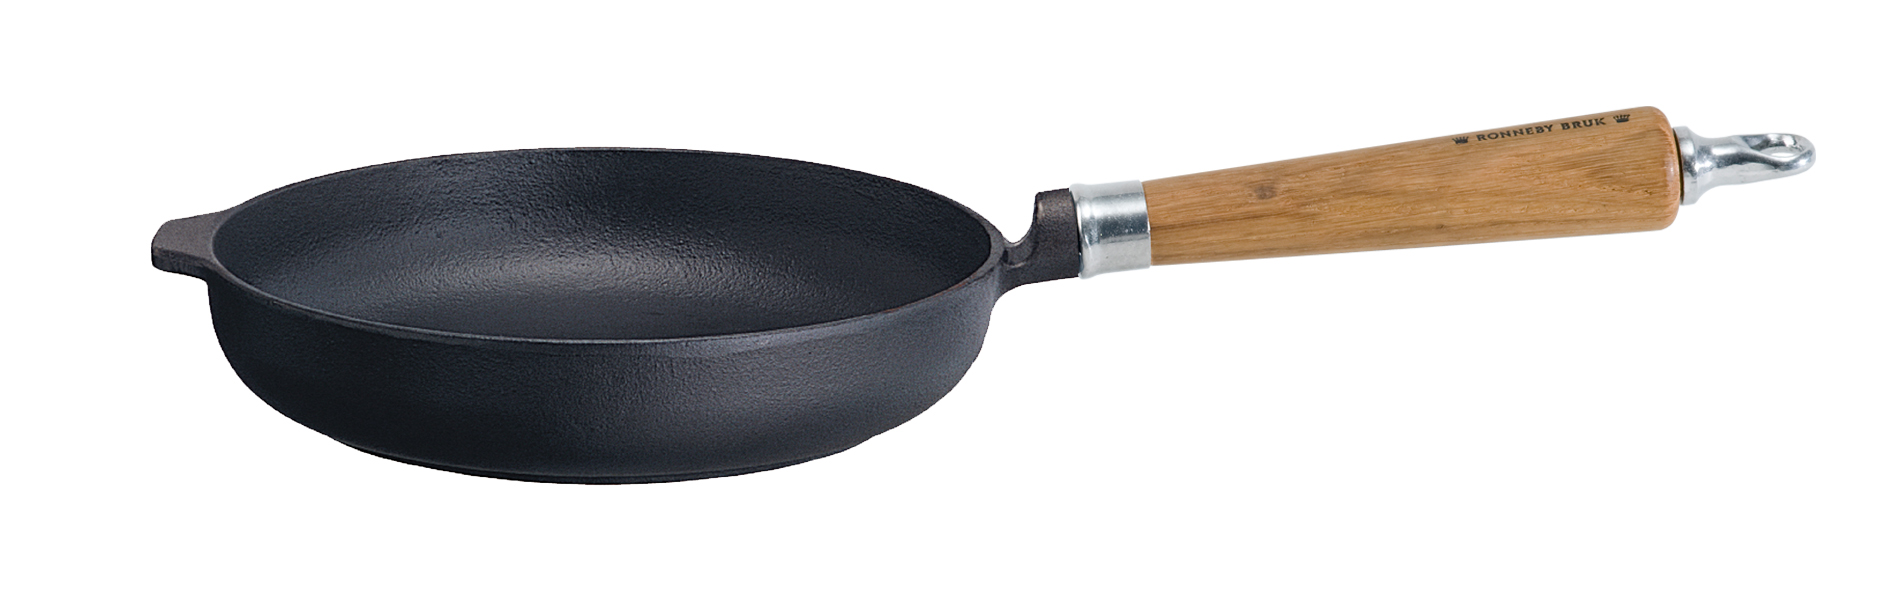 Maestro Exclusive Line Fry pan 120190